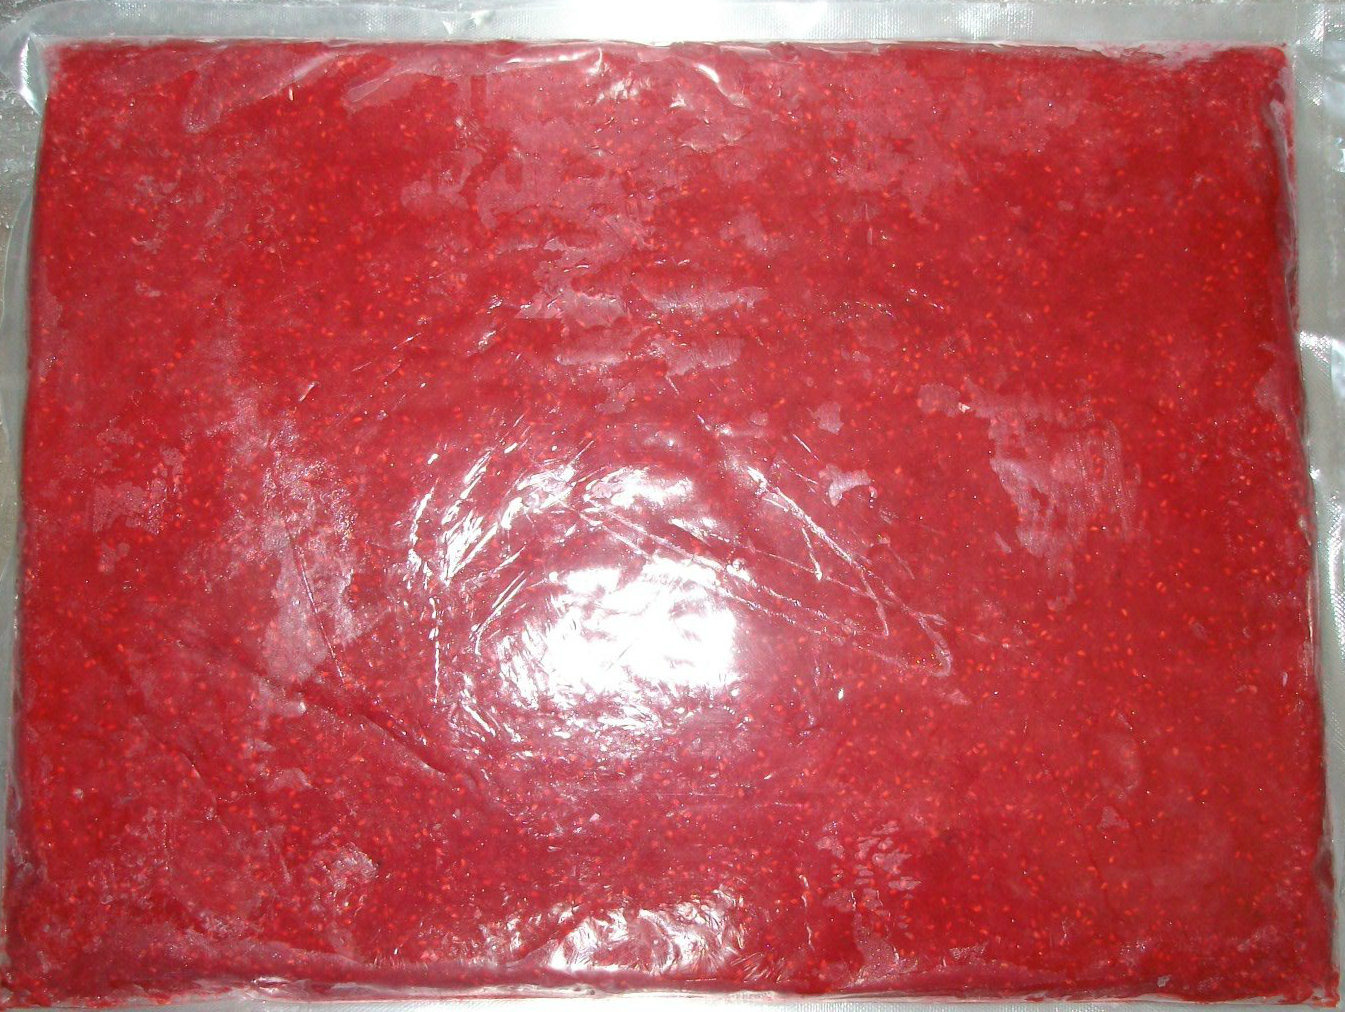 Frozen Raspberry Puree